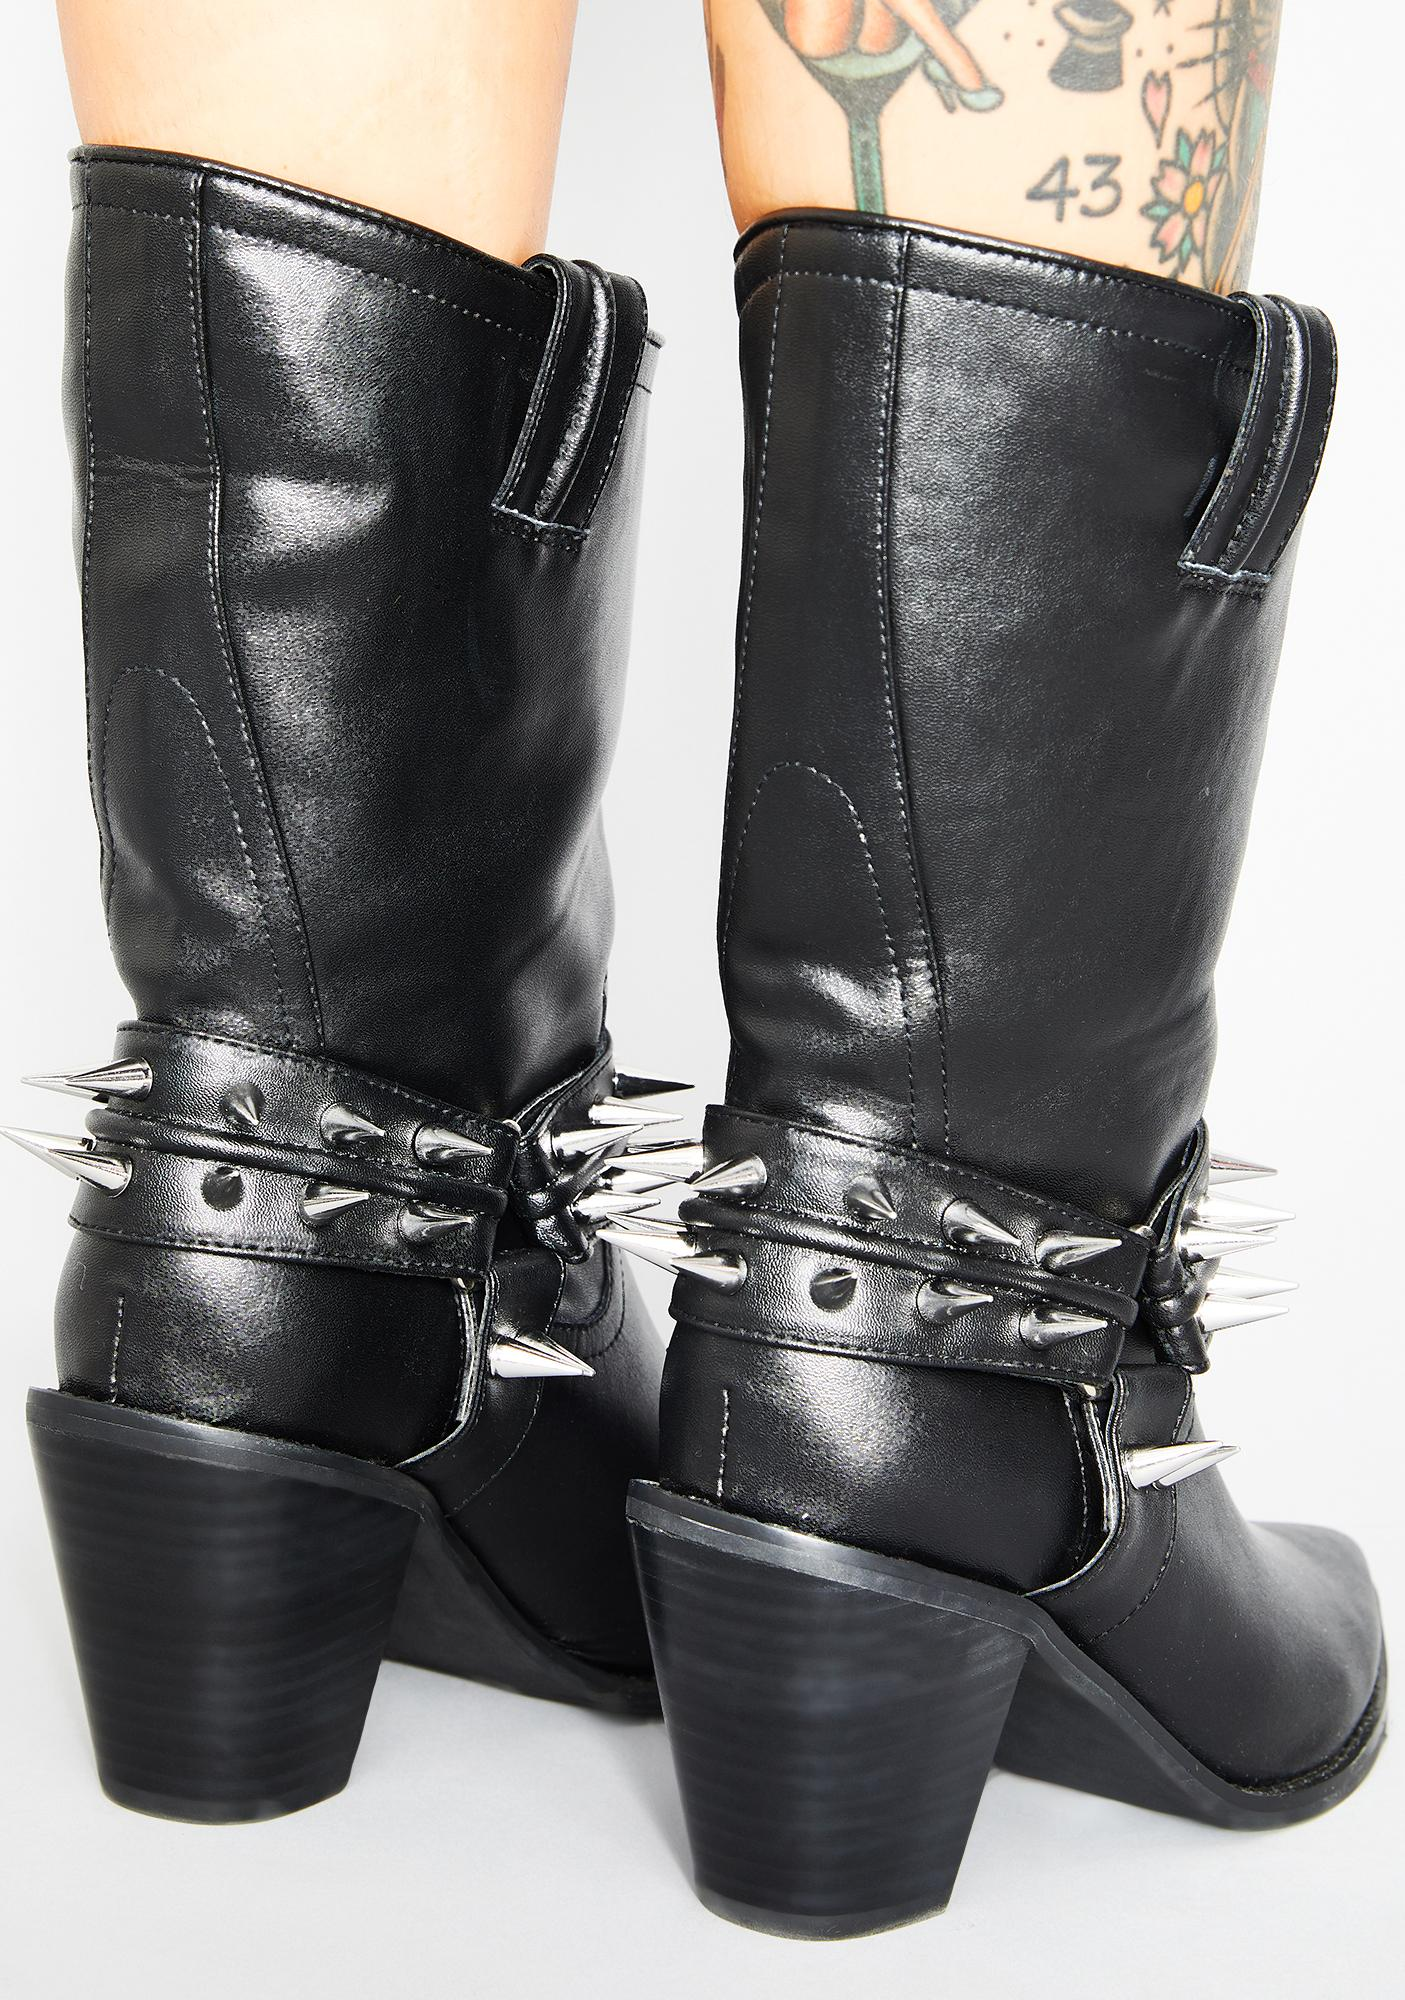 Widow Blood For Blood Spiked Boots